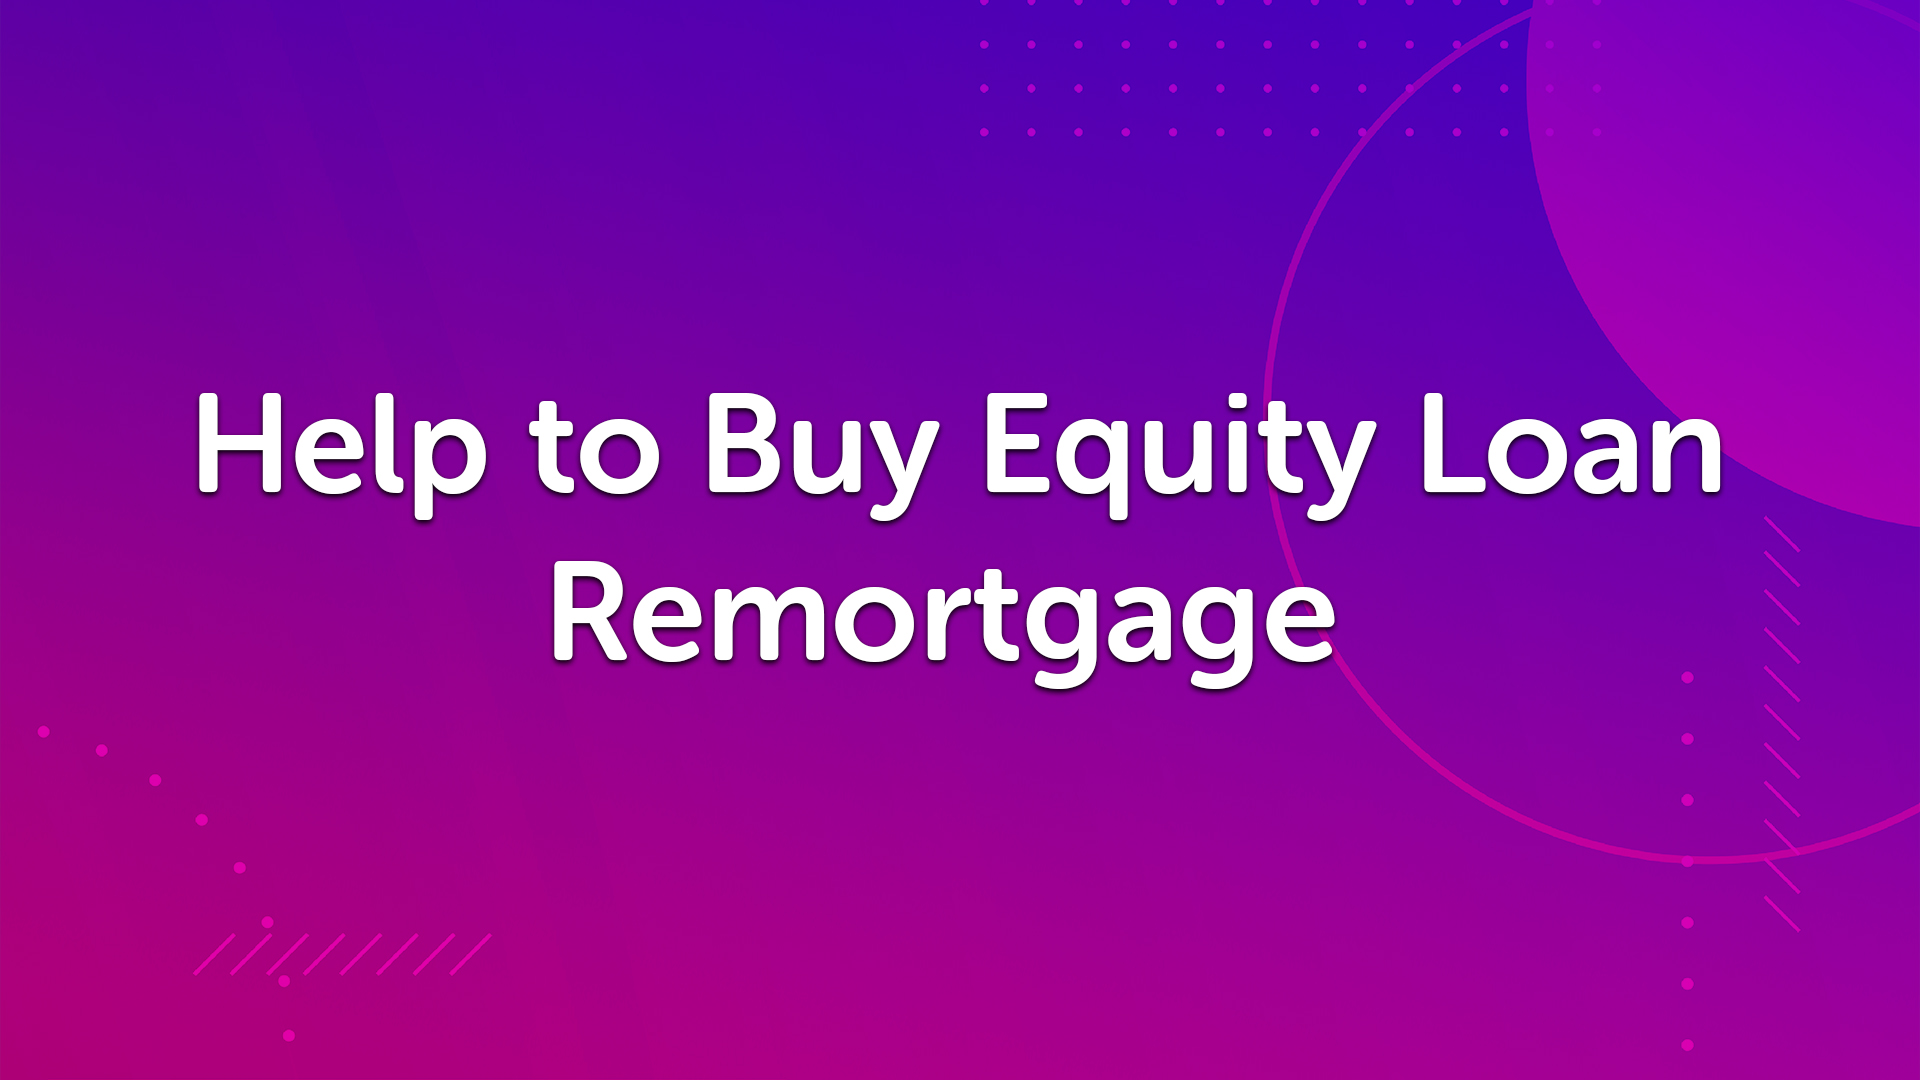 Help to Buy Equity Loan Remortgage